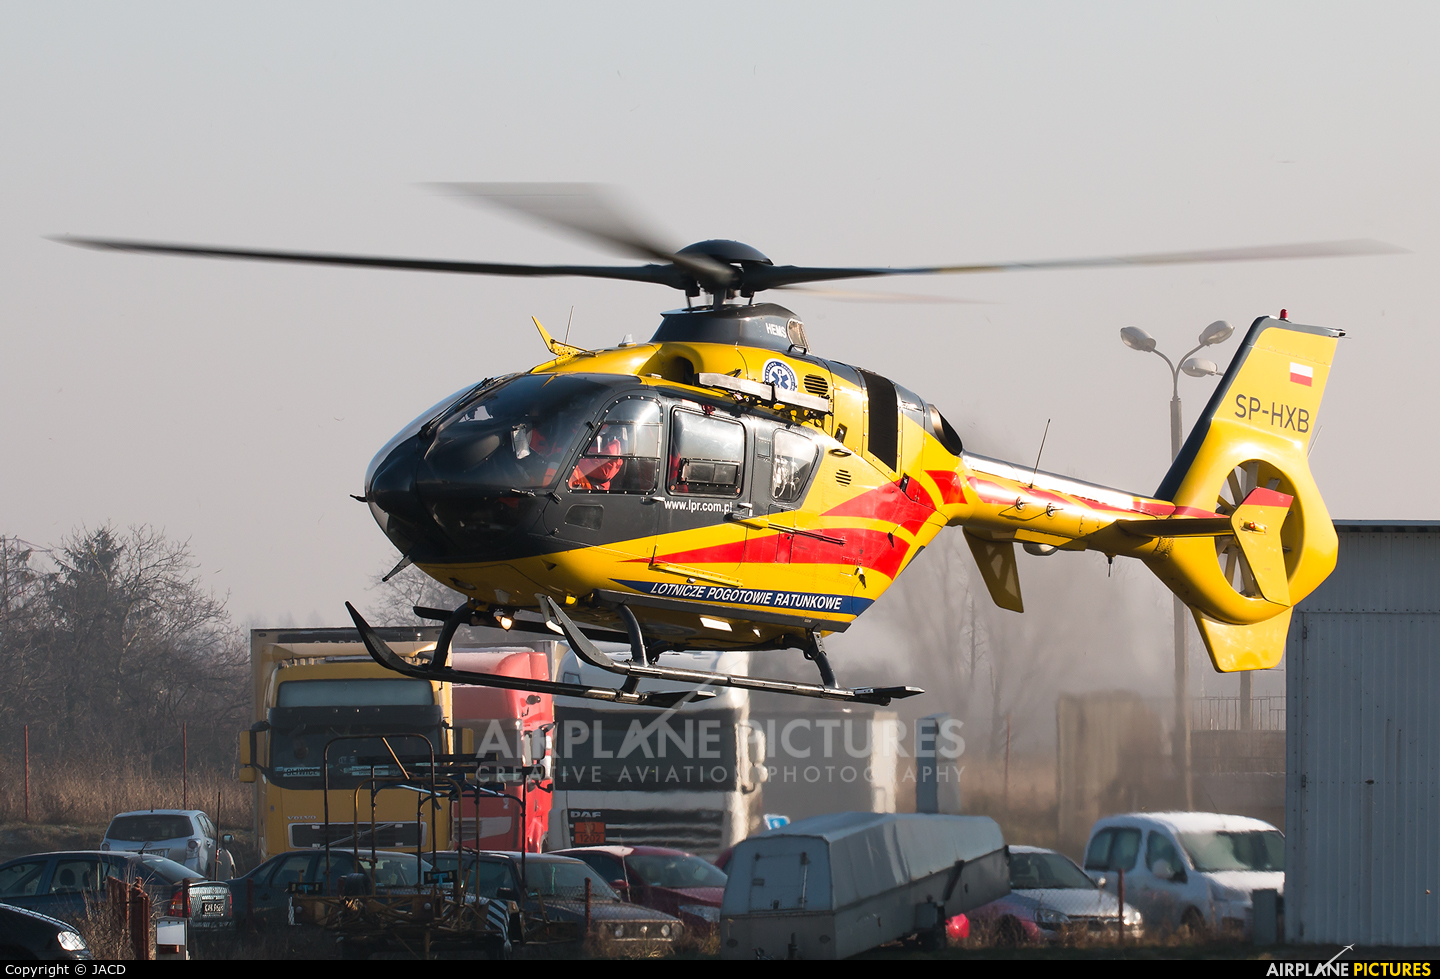 Polish Medical Air Rescue - Lotnicze Pogotowie Ratunkowe SP-HXB aircraft at Gliwice